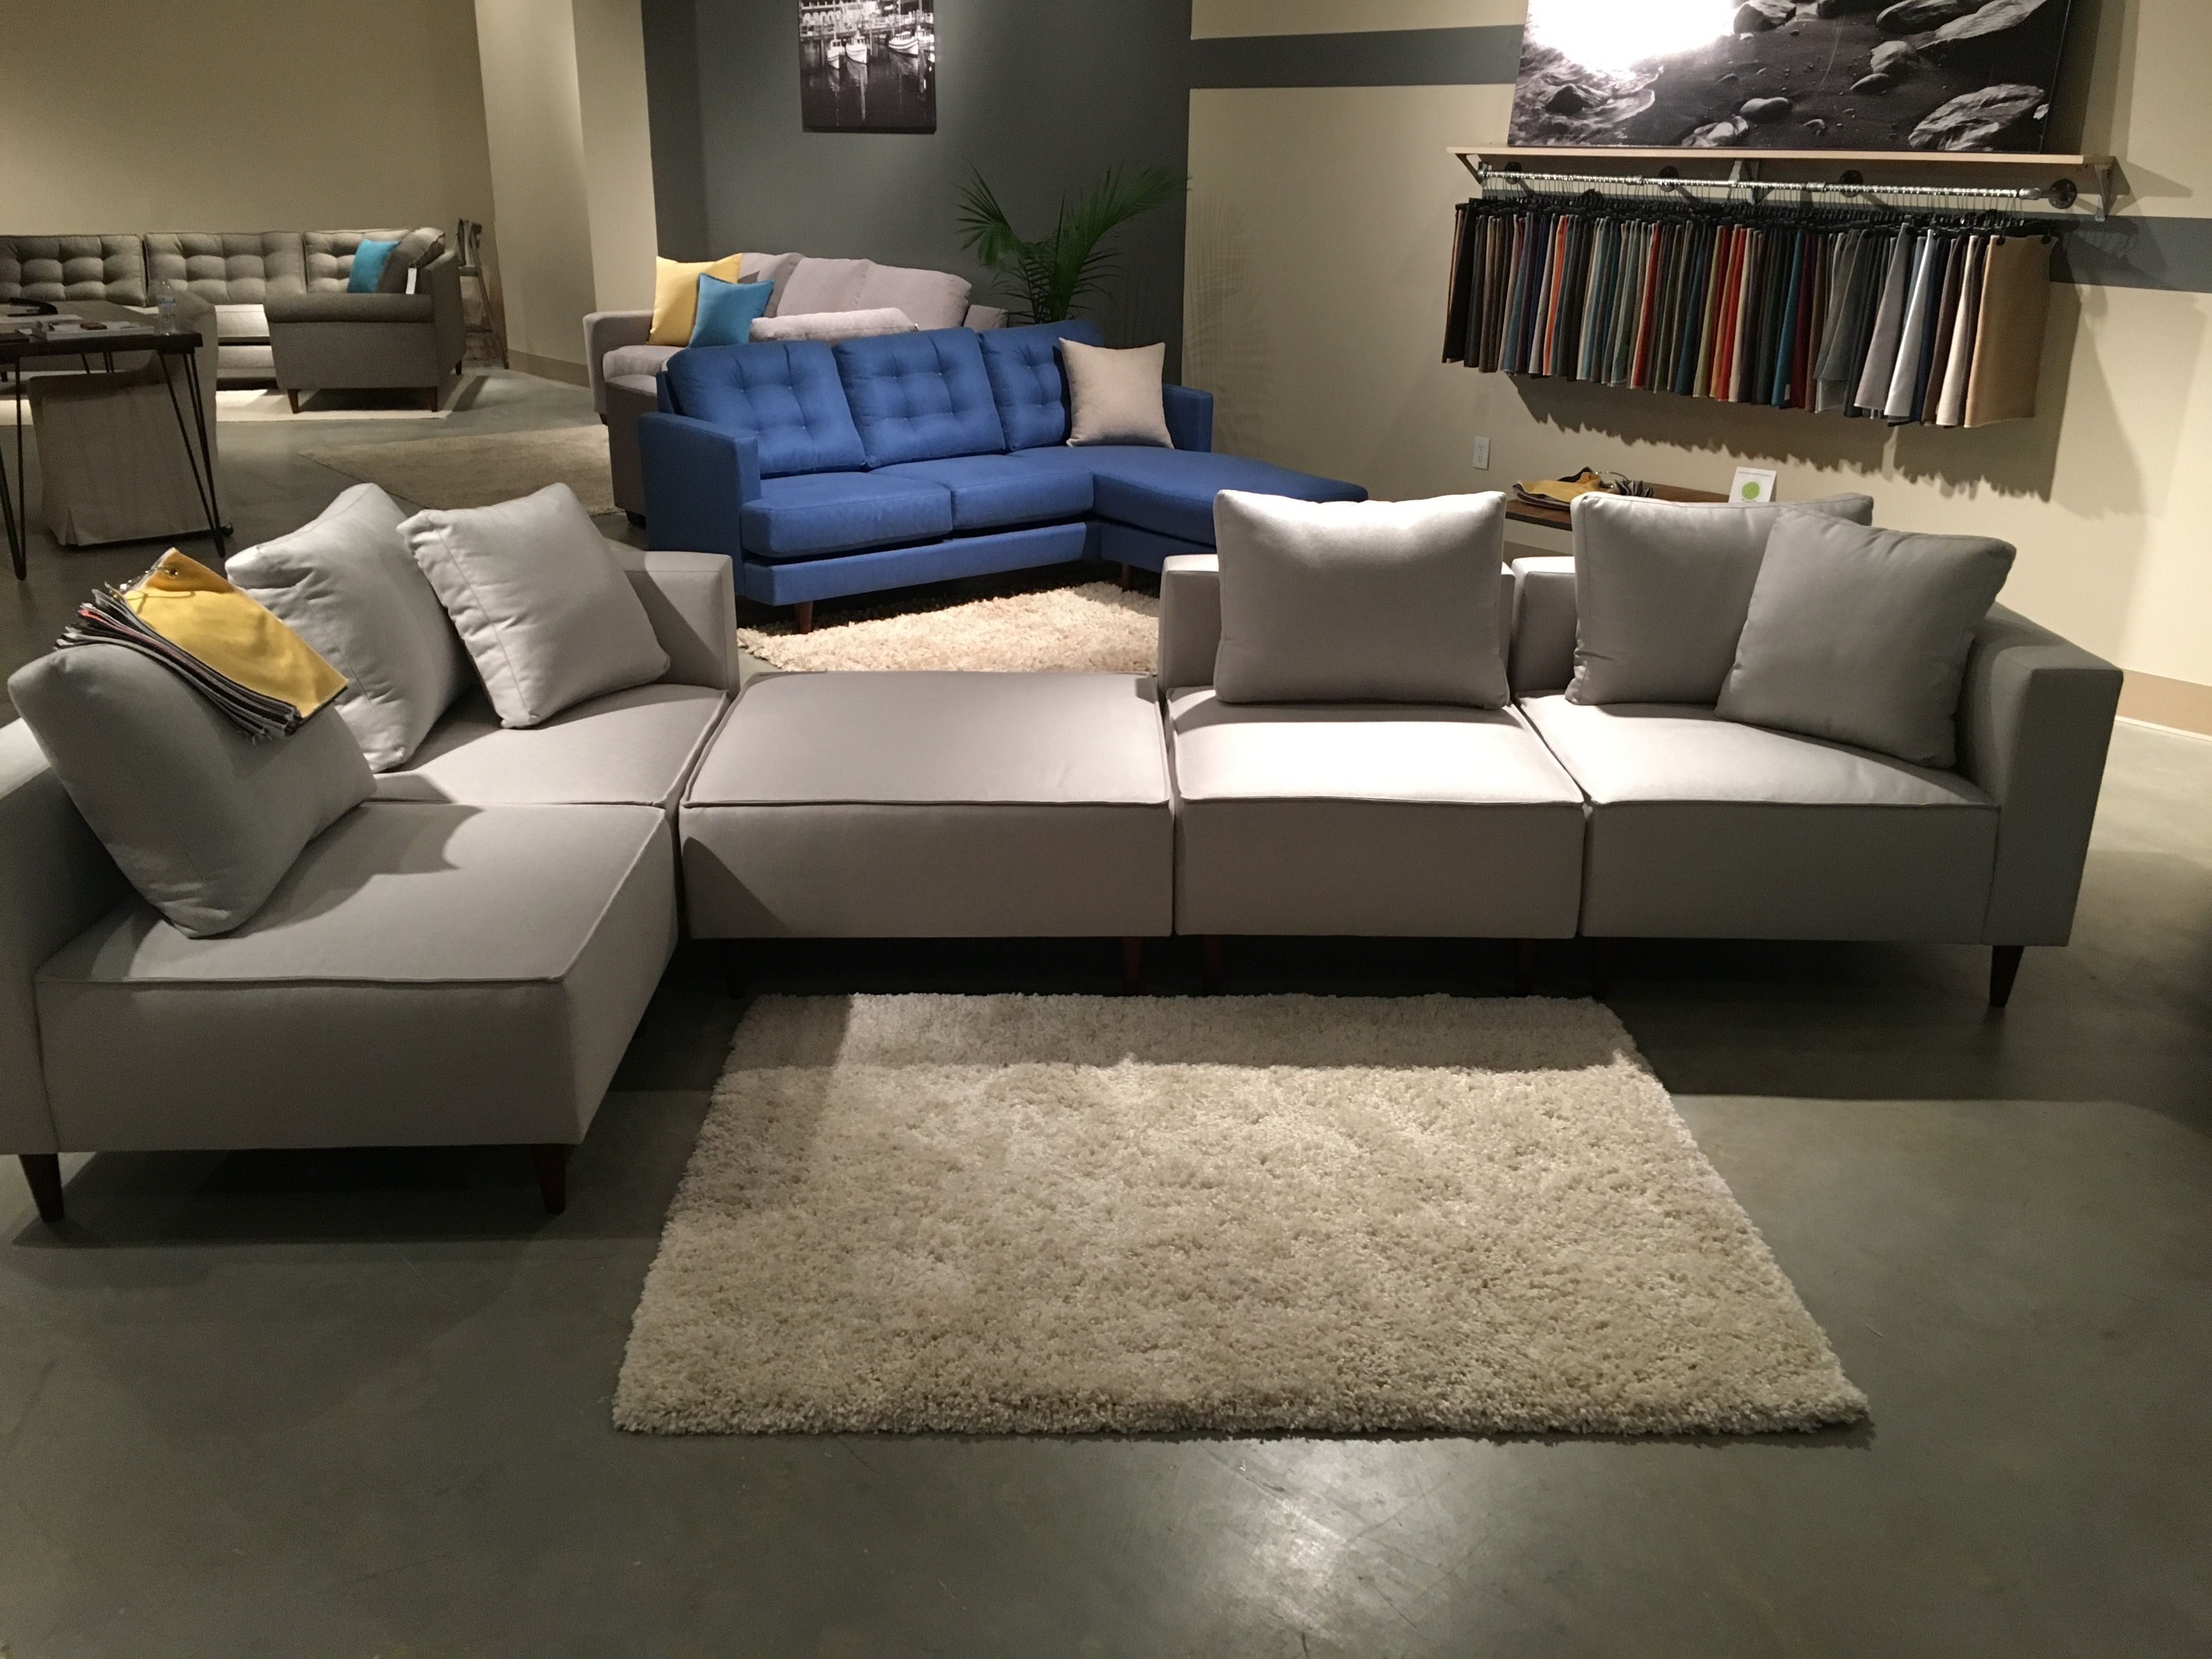 Huntington Industries Cove Modular Sectional